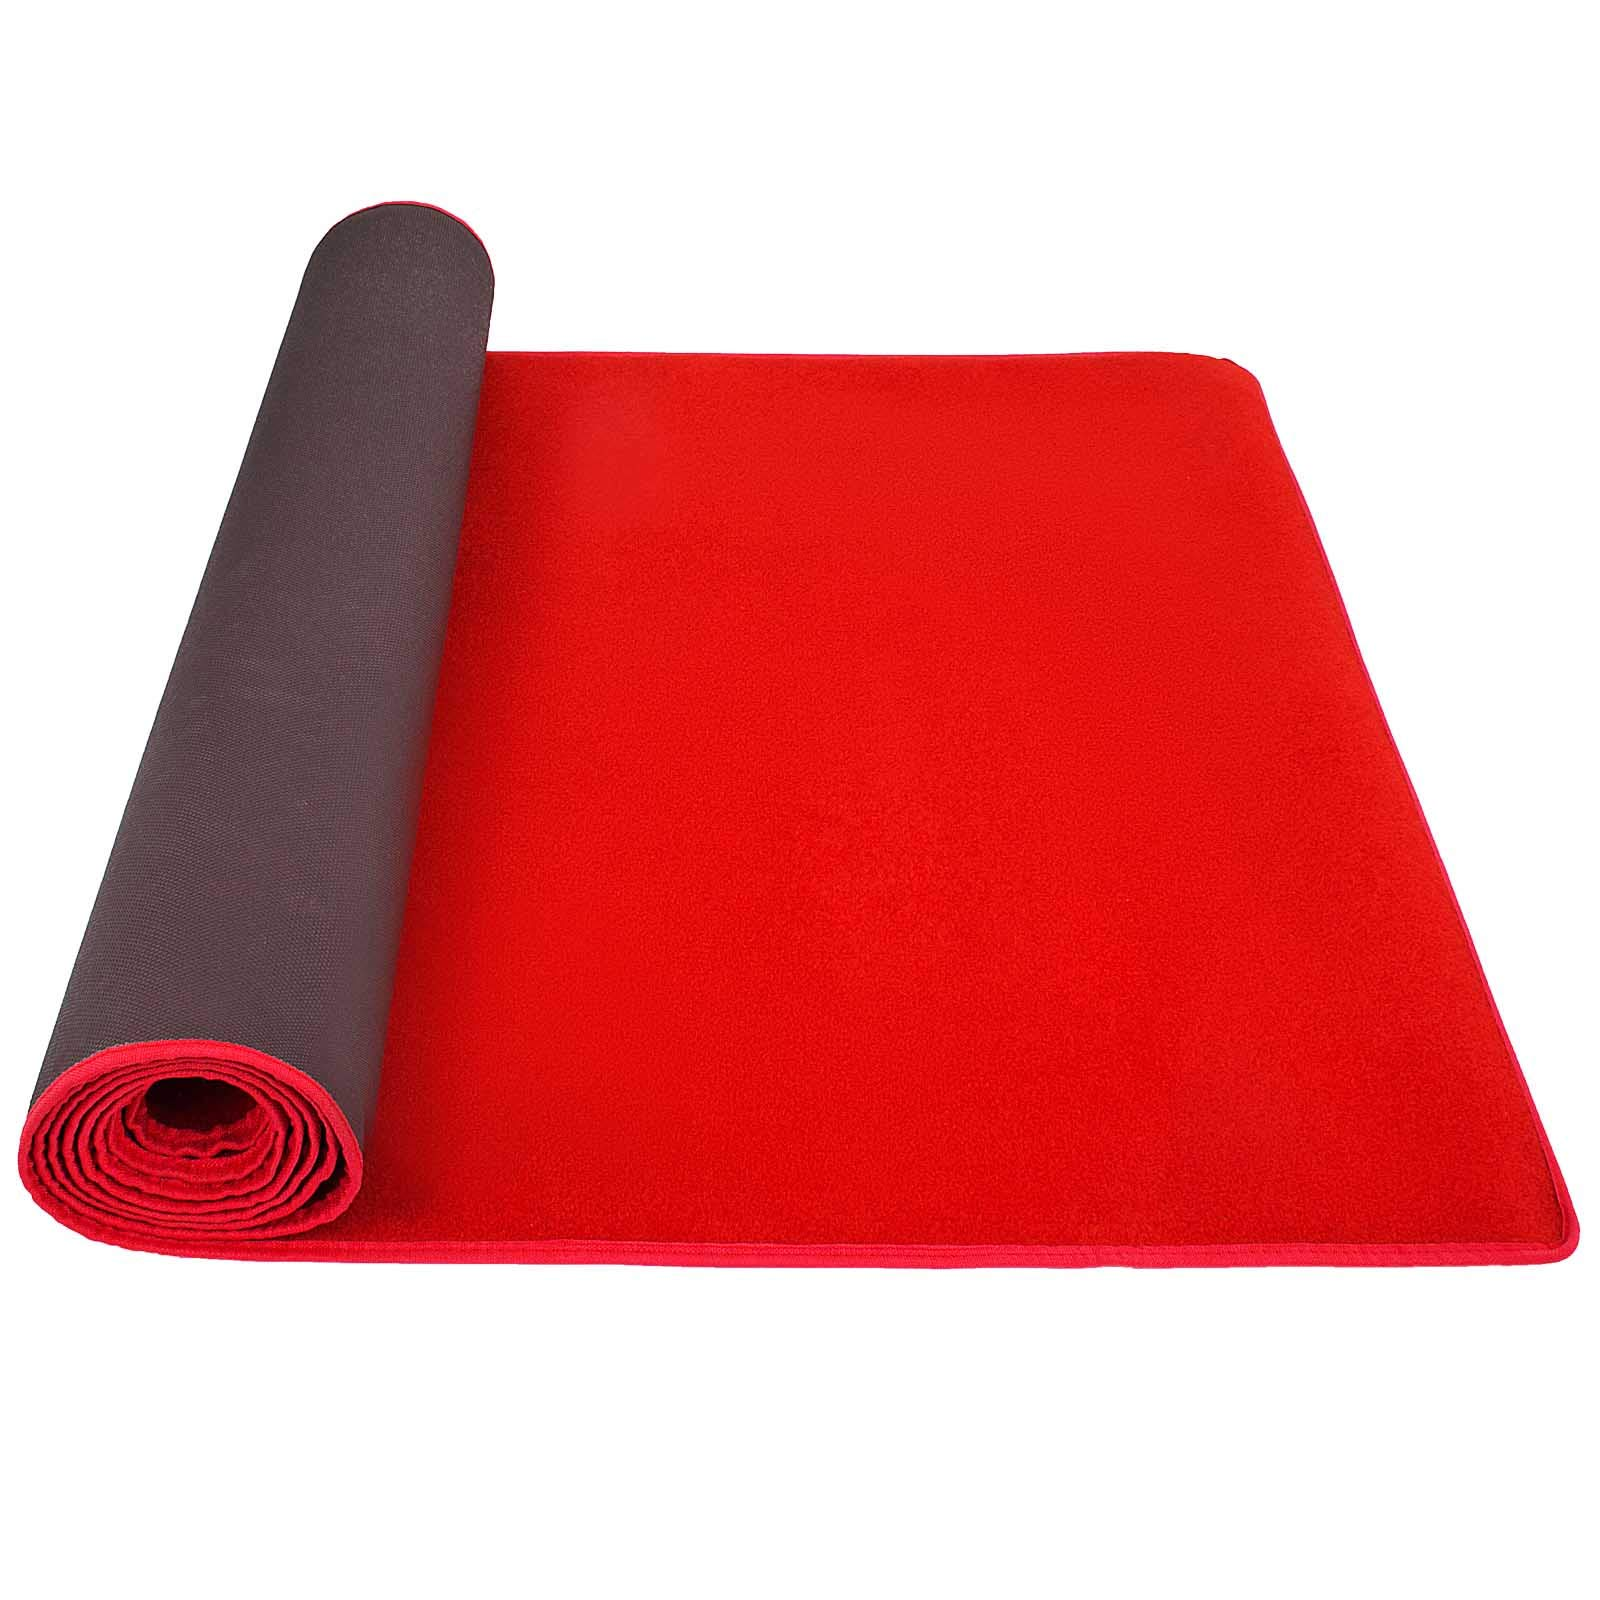 Happybuy 3.3Ft X 13Ft Large Red Carpet Runner Rug Solid TRP Rubber Backed Hollywood Runner Carpet Non-Slip Stair Patio Party Decor Wedding 1M X 4M Aisle Floor Runner Rug - Various Sizes (Red, 3x13Ft) by Happybuy (Image #3)